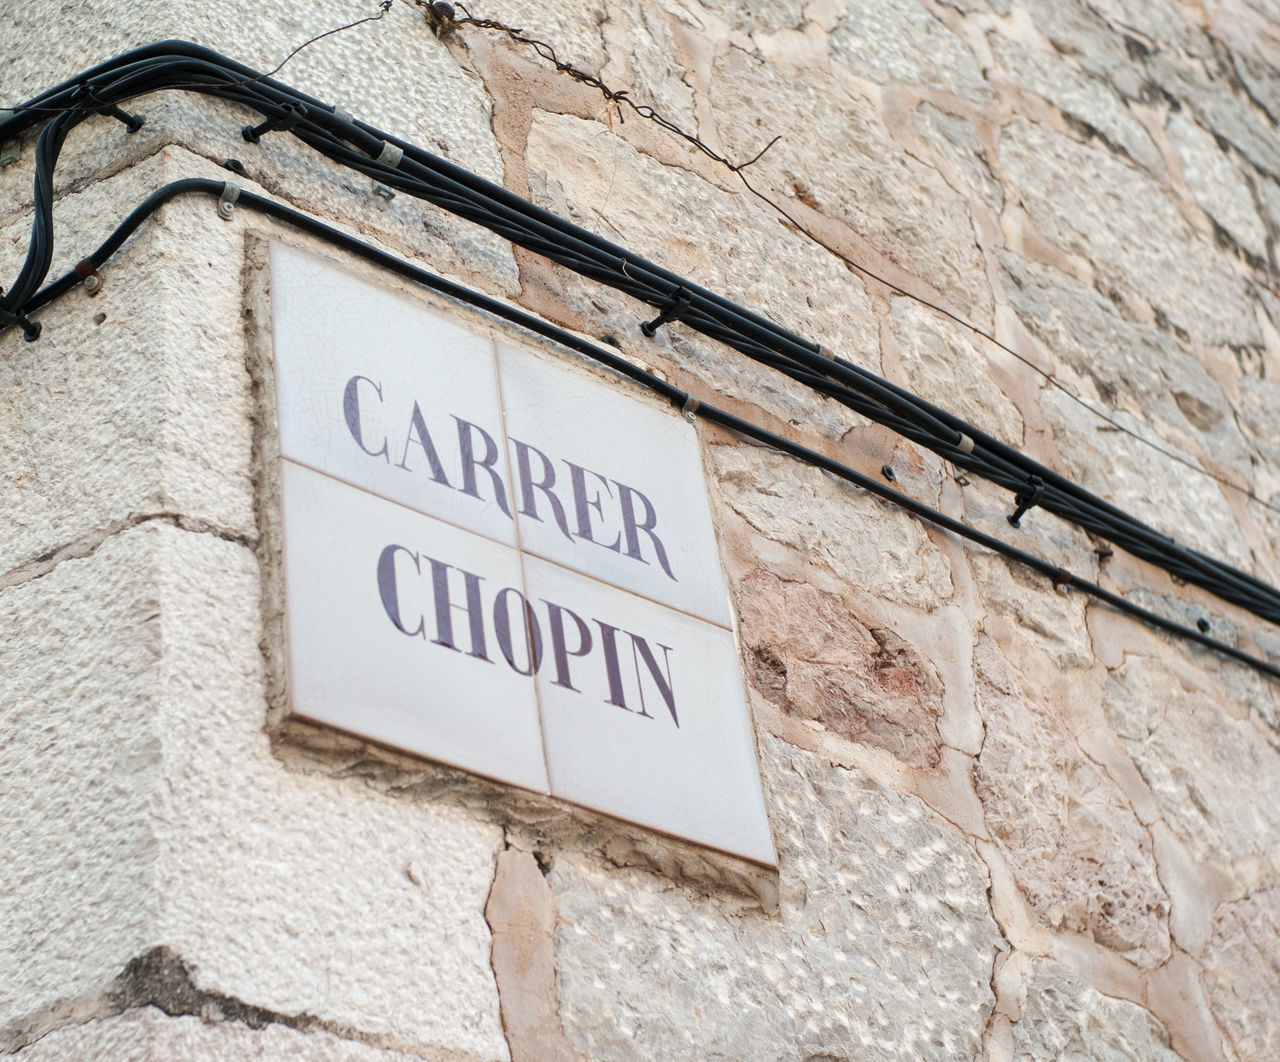 Carrer Chopin in Valldemossa on Mallorca island Baleares Balearic Islands Chopin Low Angle View Majorca Mallorca Mediterranean  Sign Street Sign Travel Destinations Valldemossa